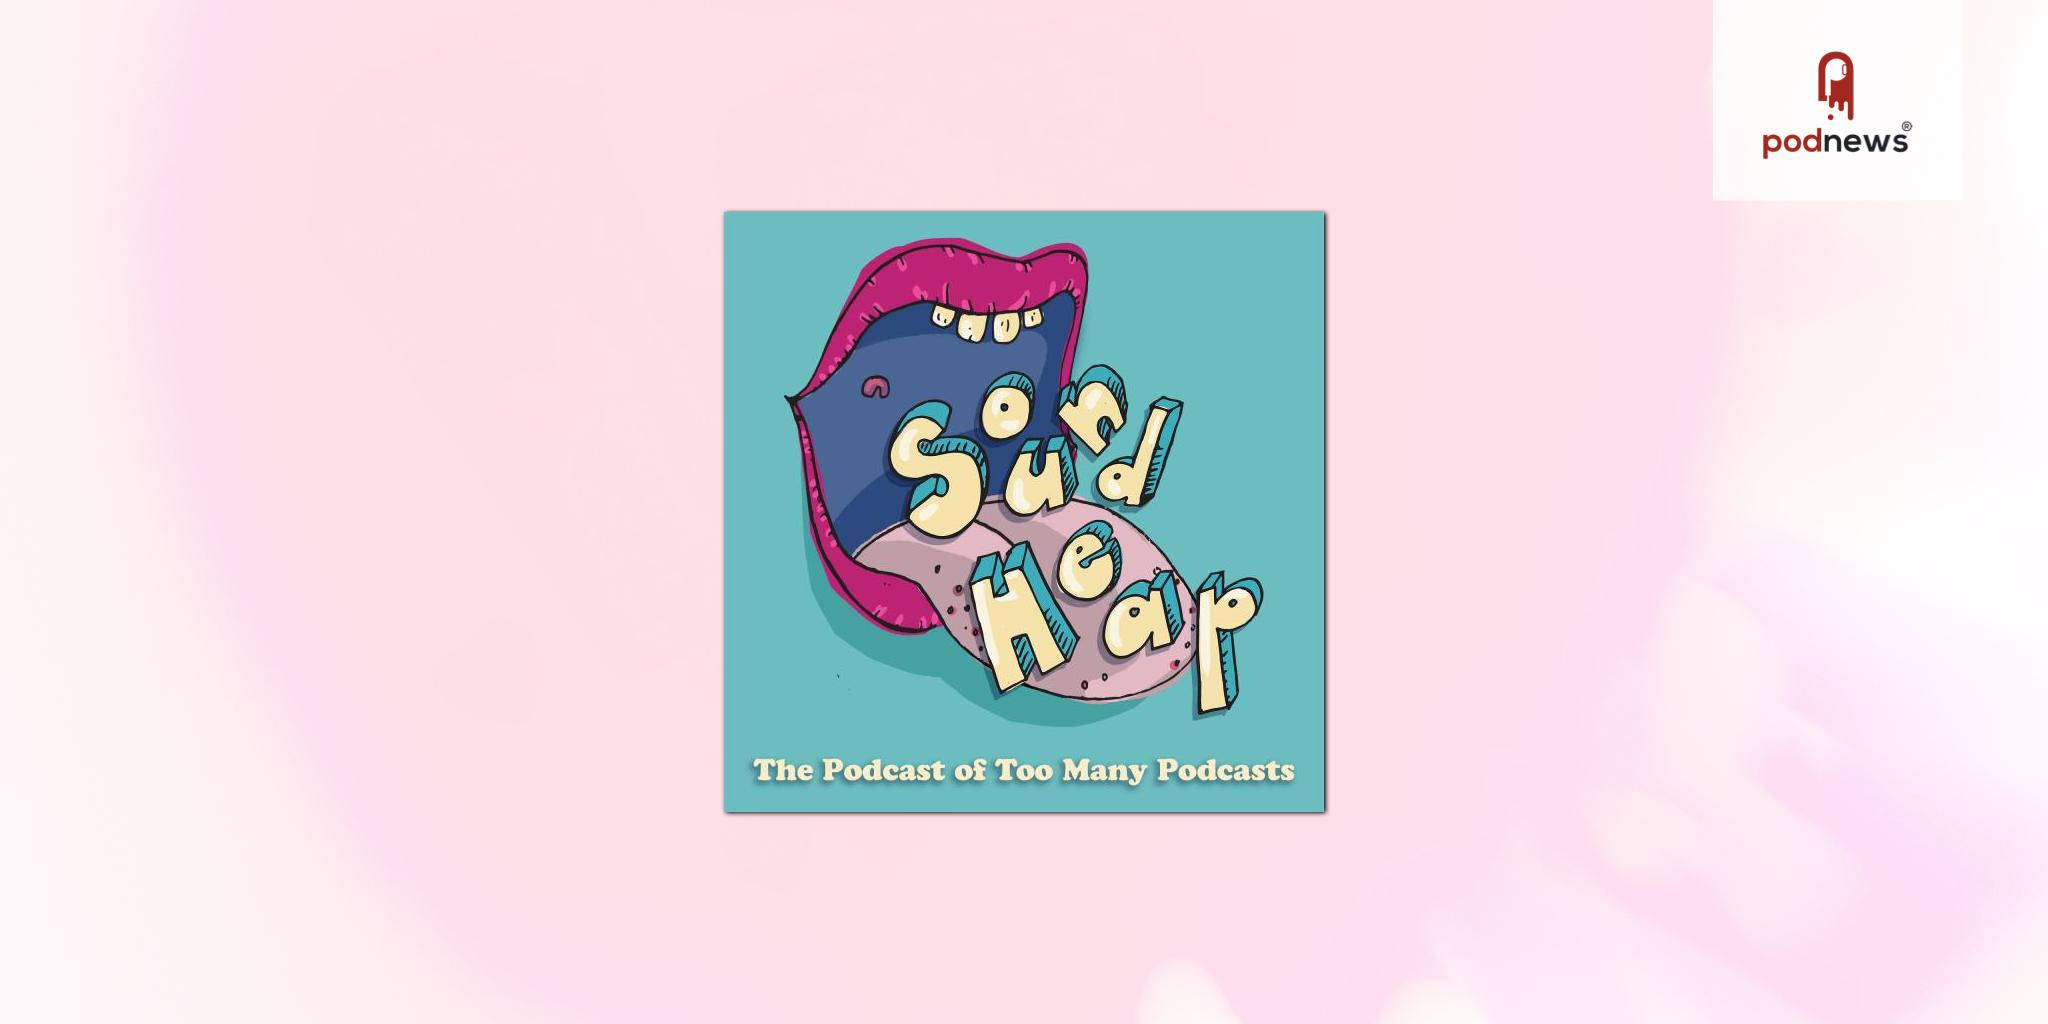 Sound Heap promises a podcast of infinite podcasts